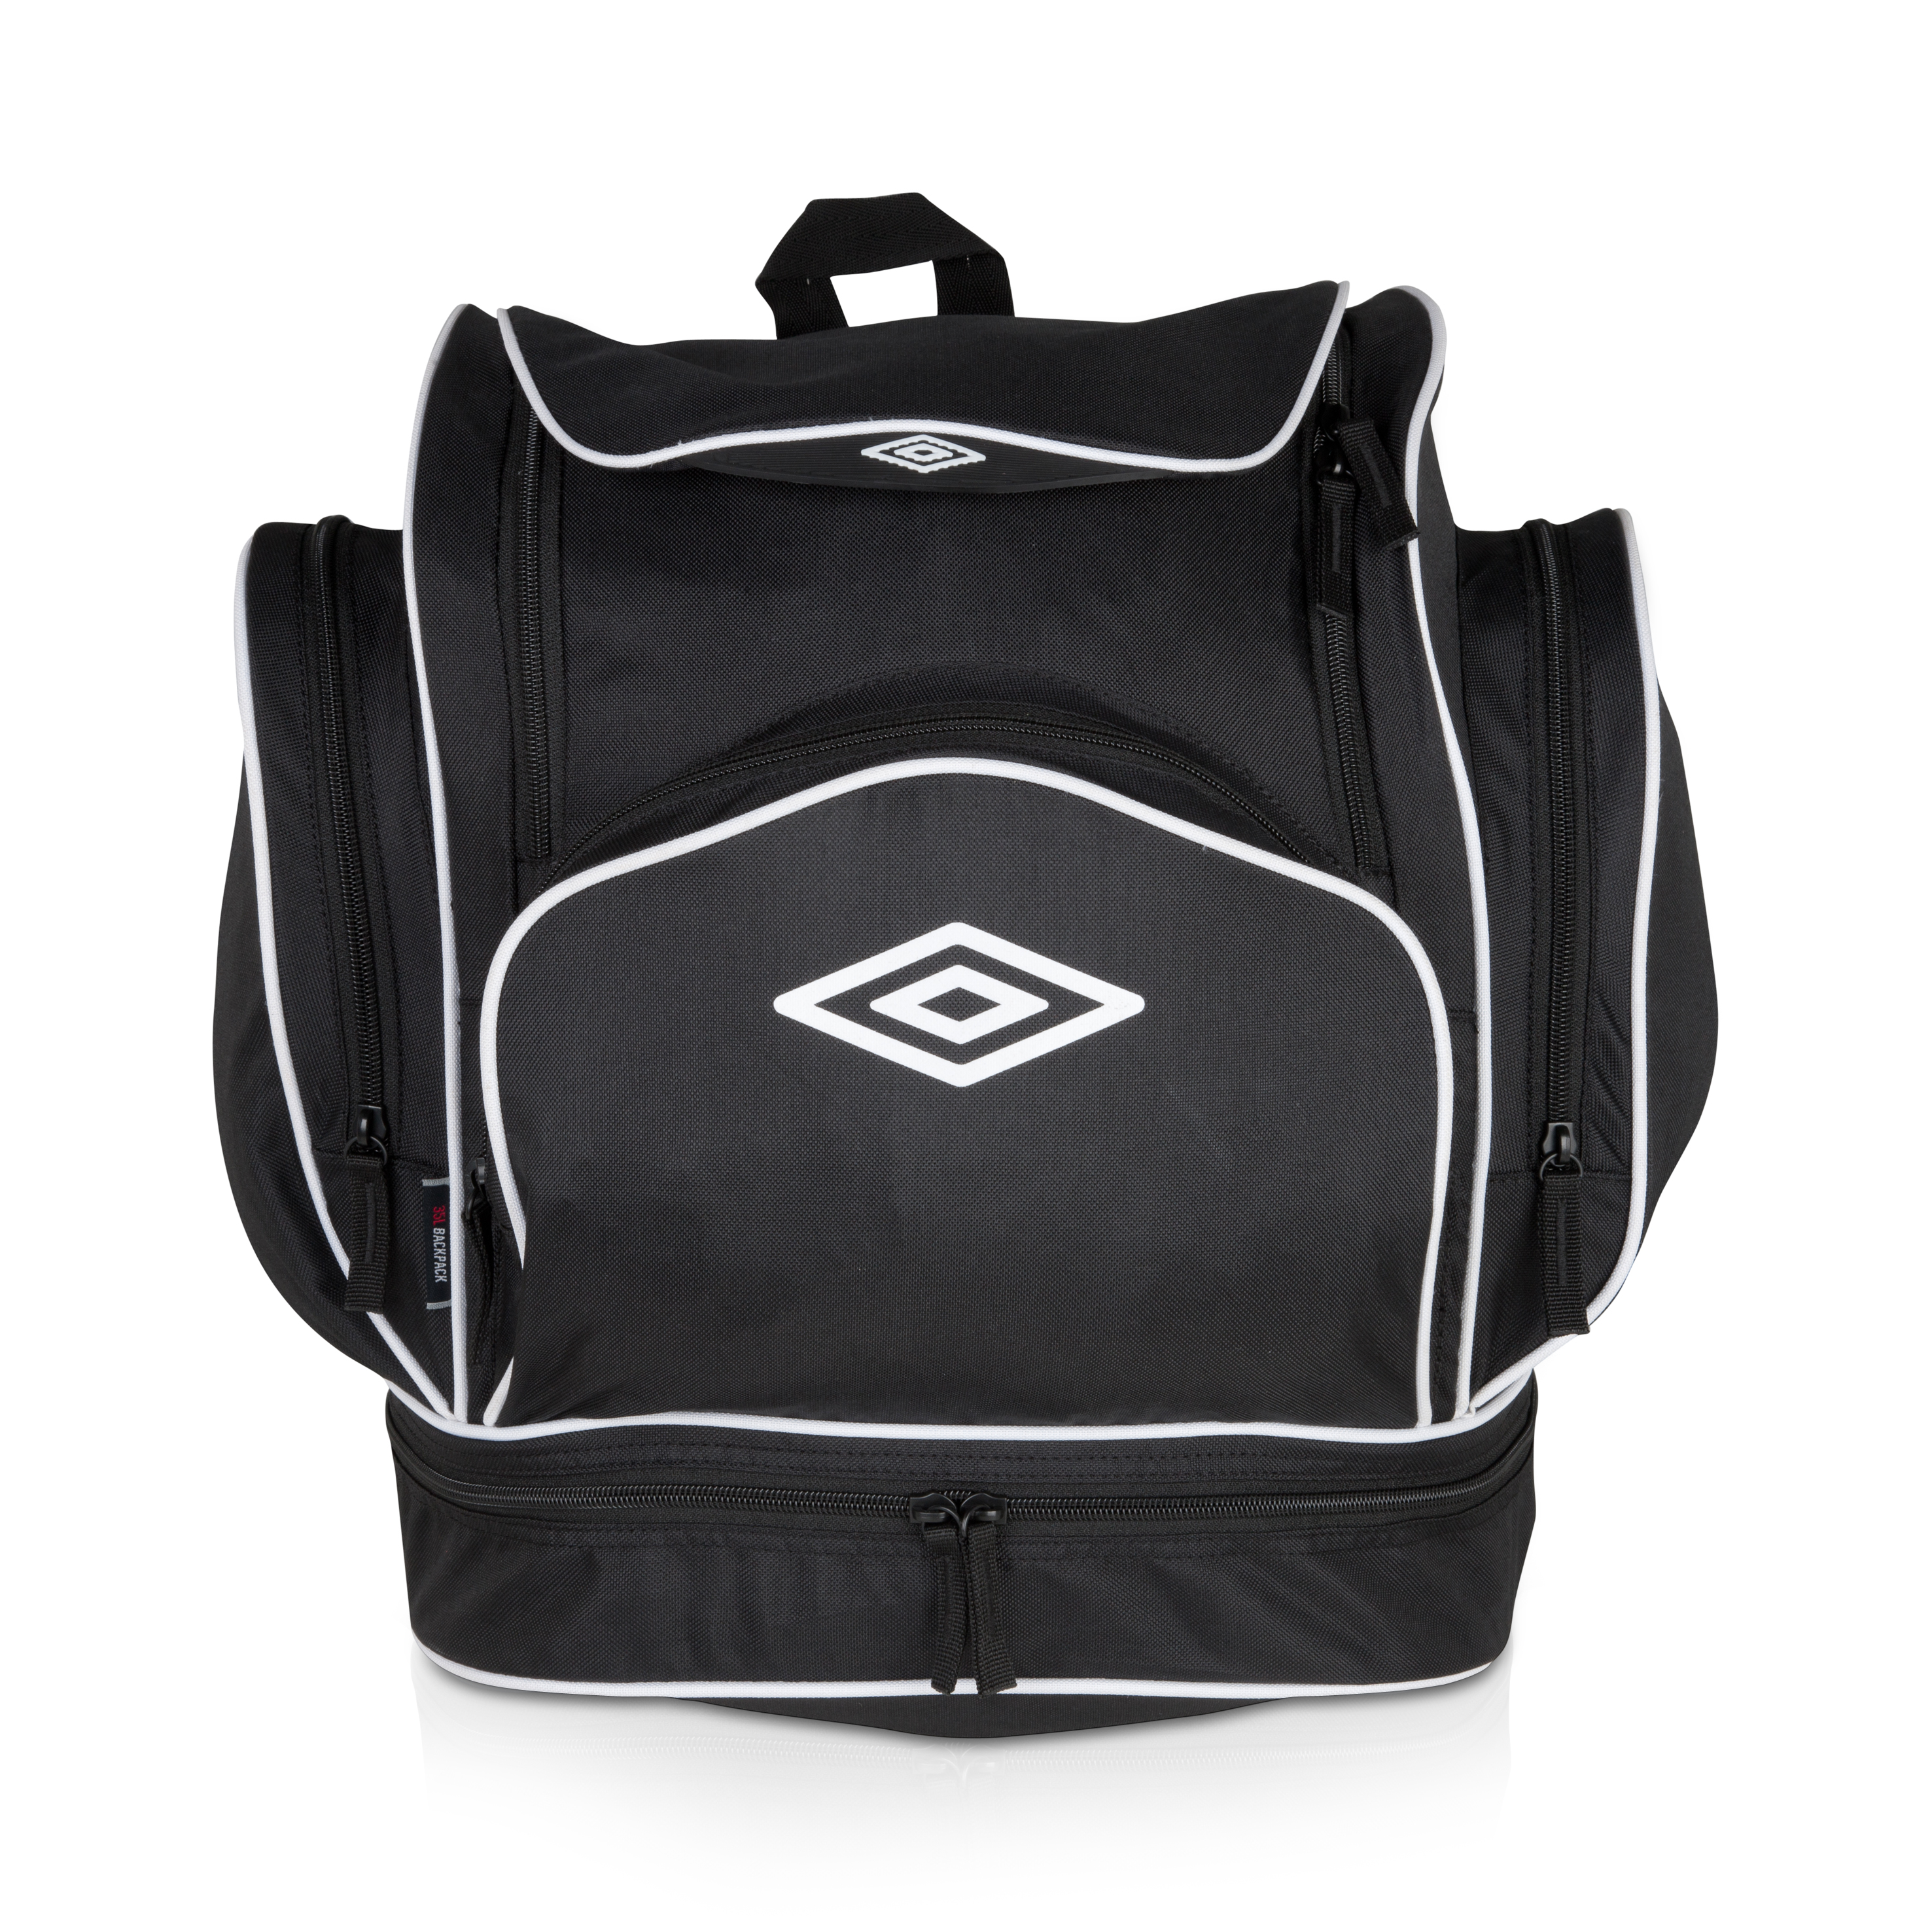 Umbro Backpack - Black / White